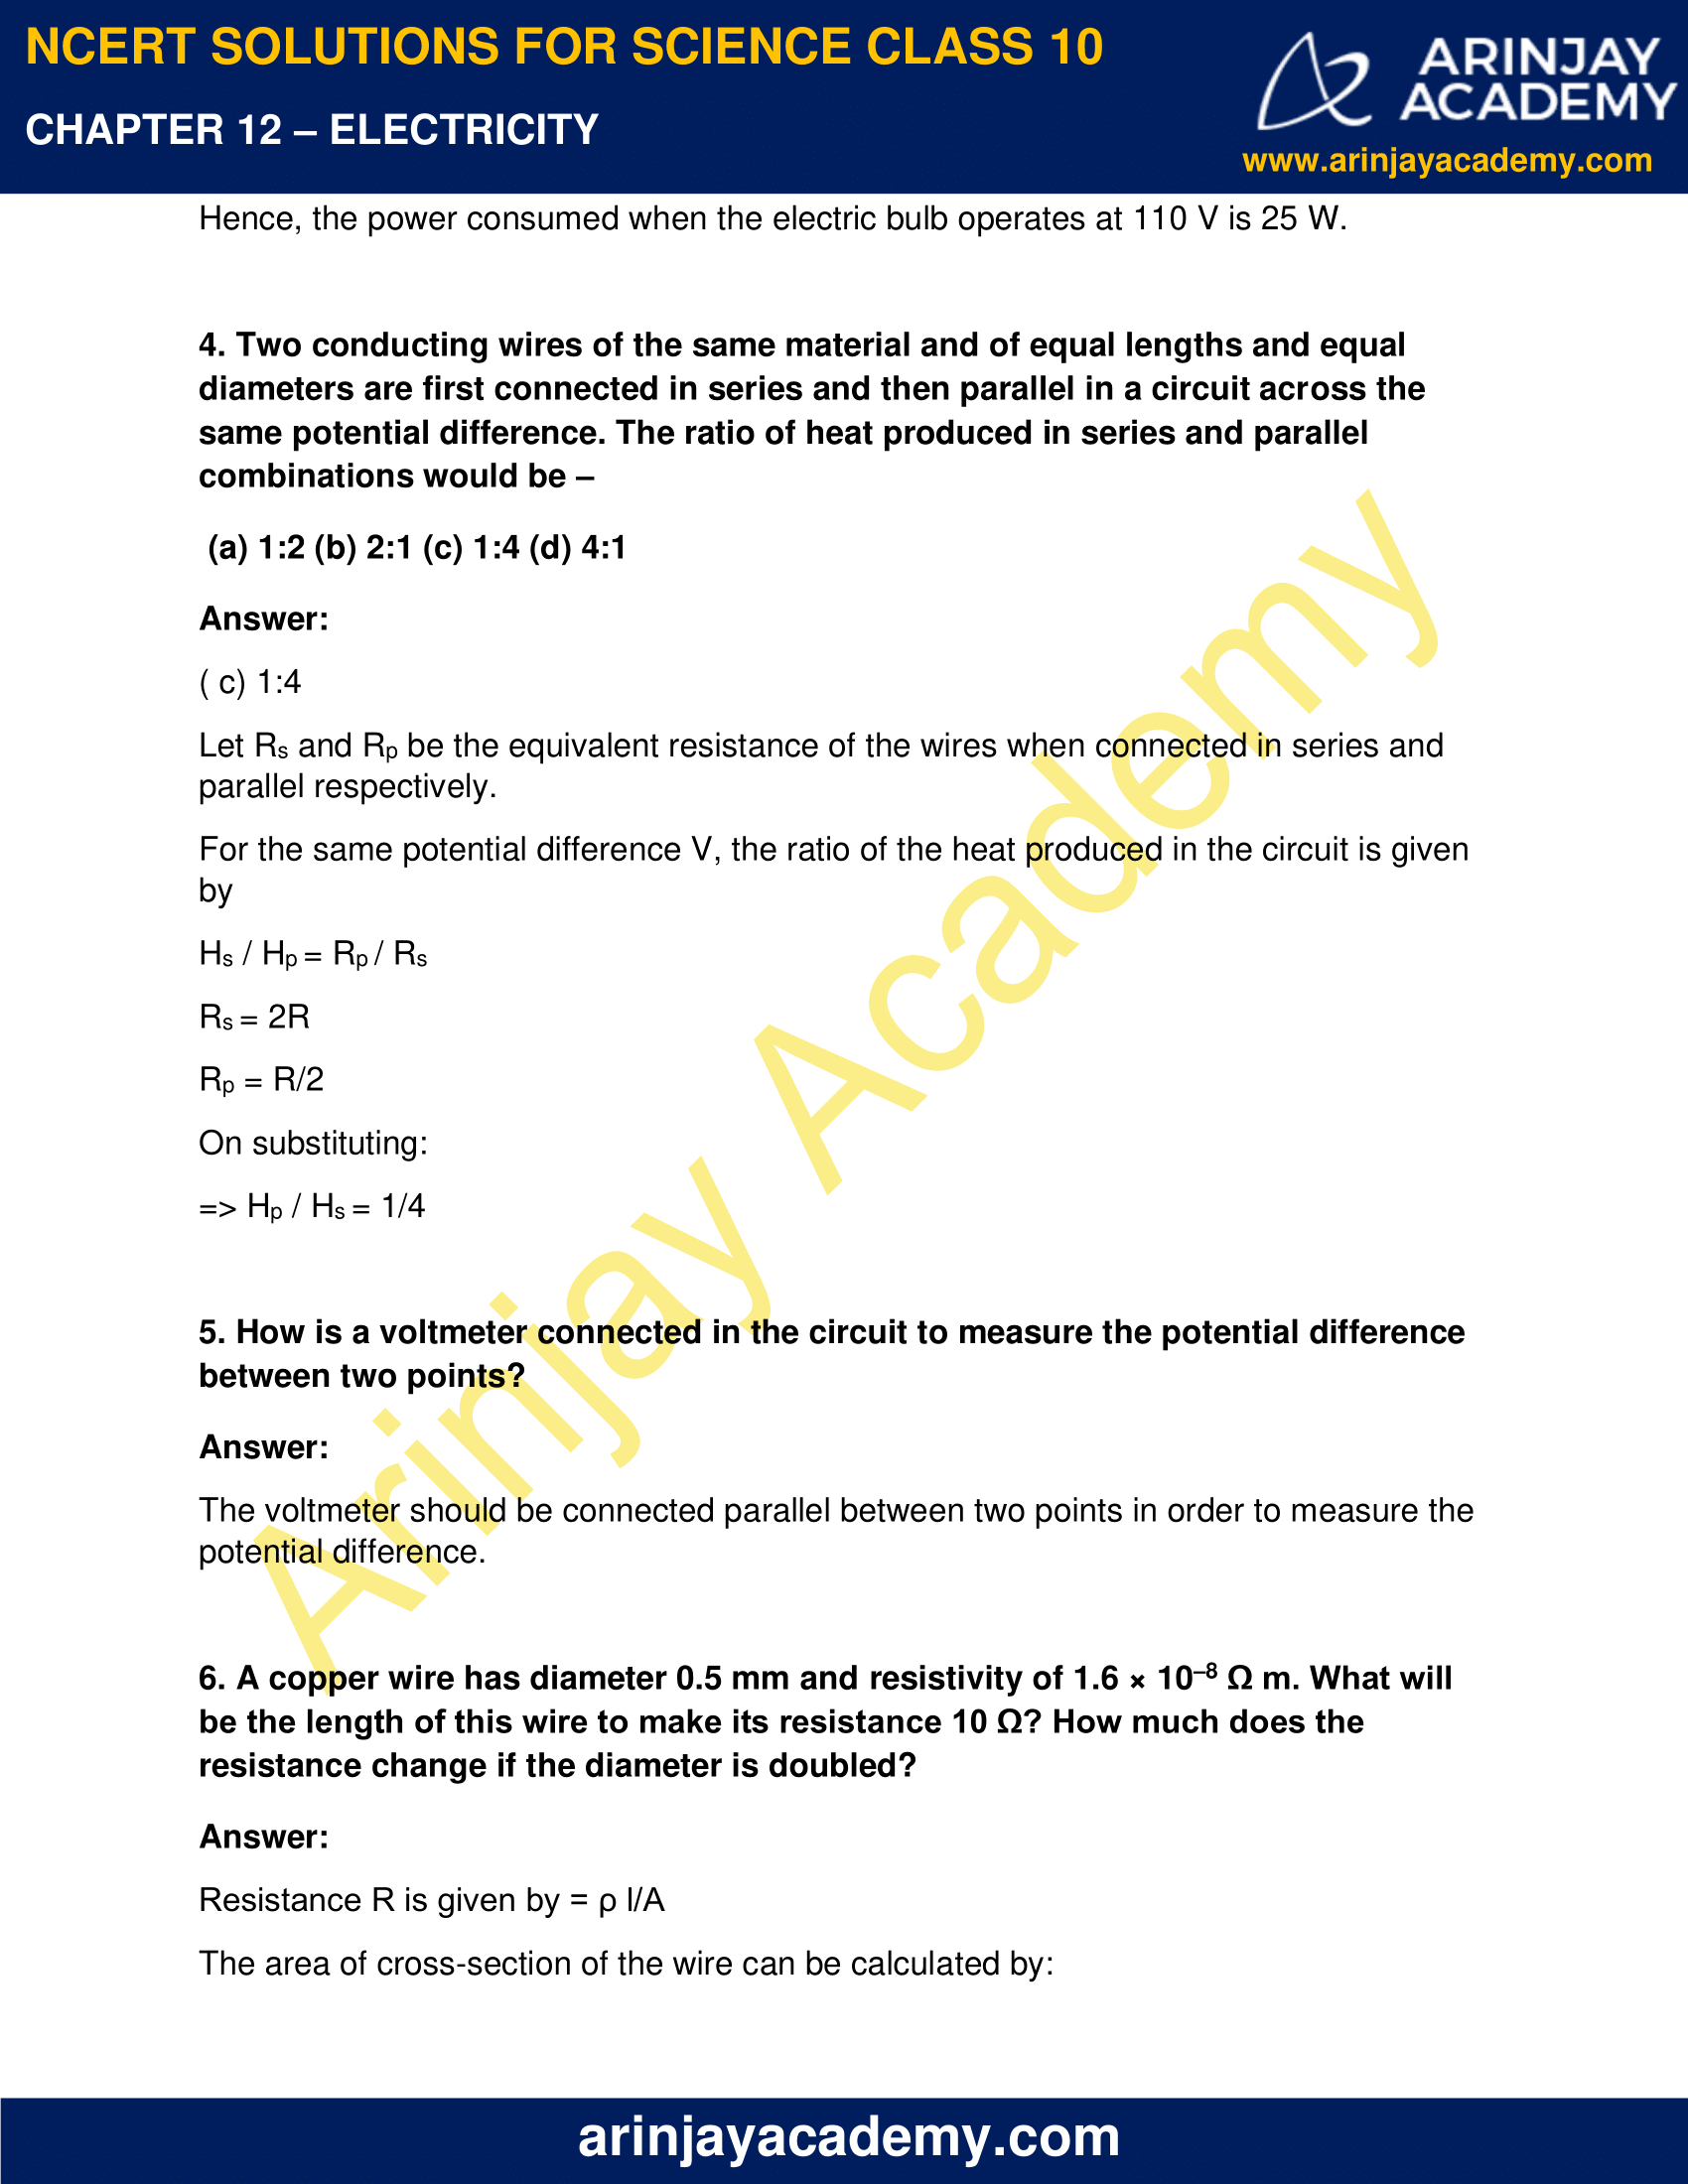 NCERT Solutions for Class 10 Science Chapter 12 Electricity image 14